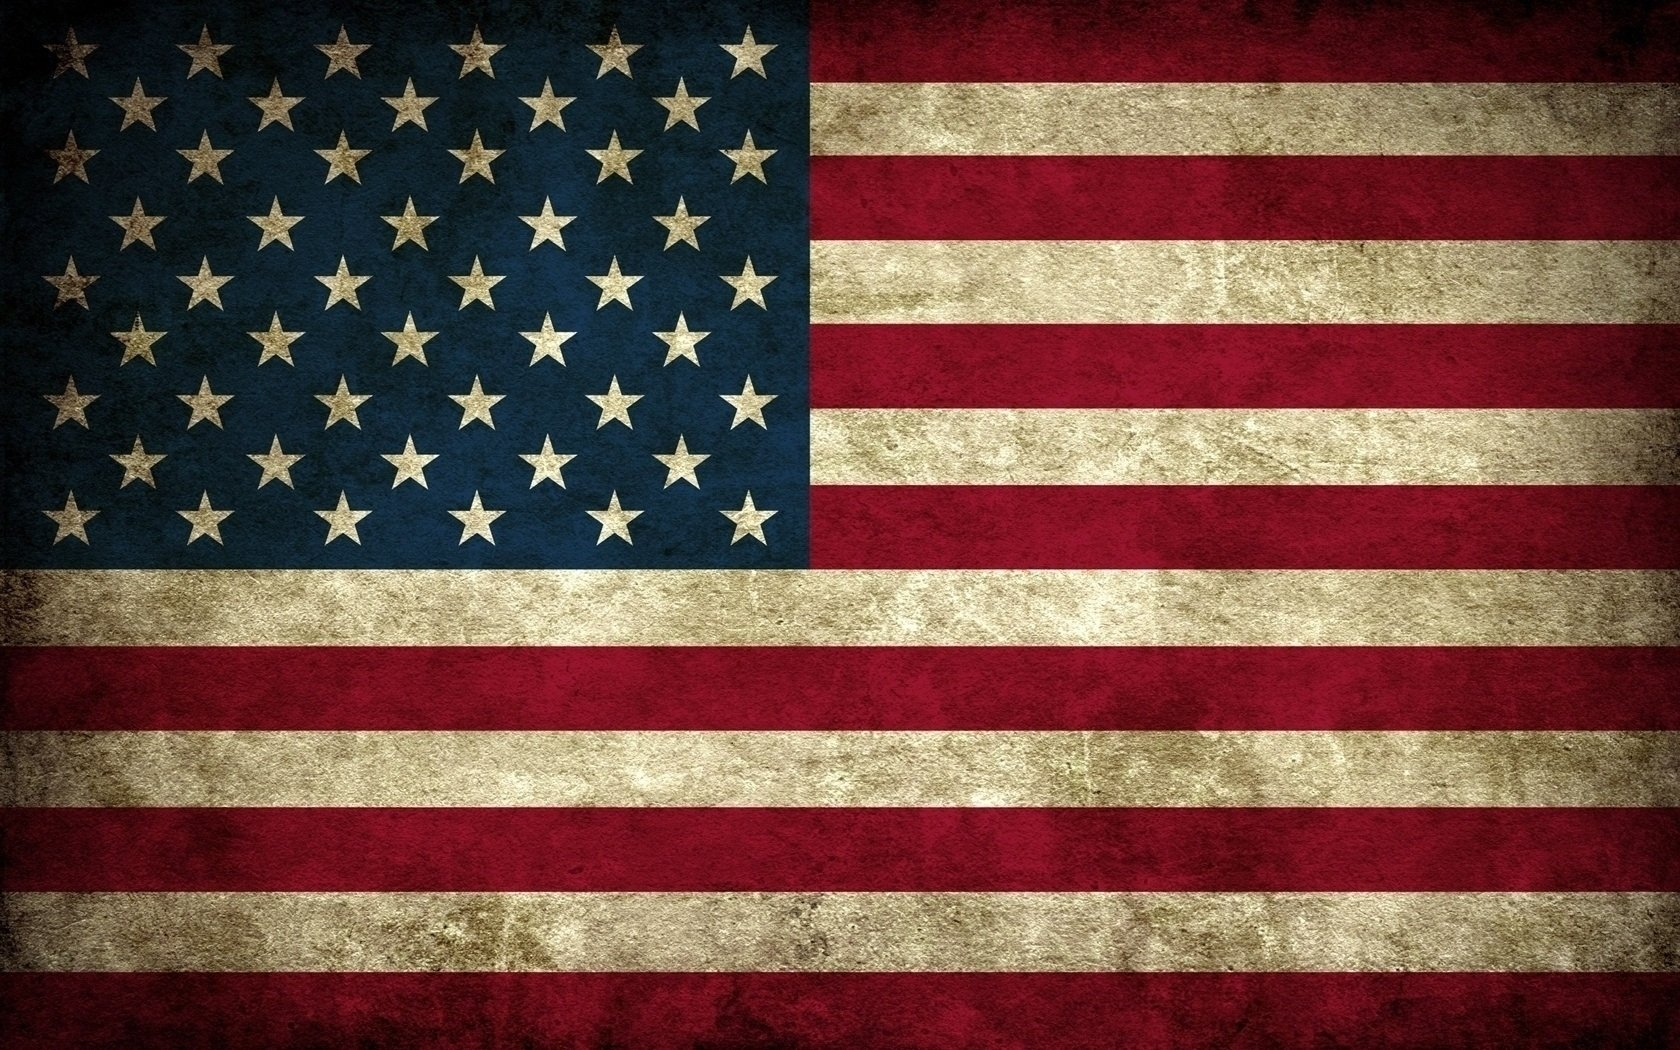 American Flag Wallpaper 1920x1080